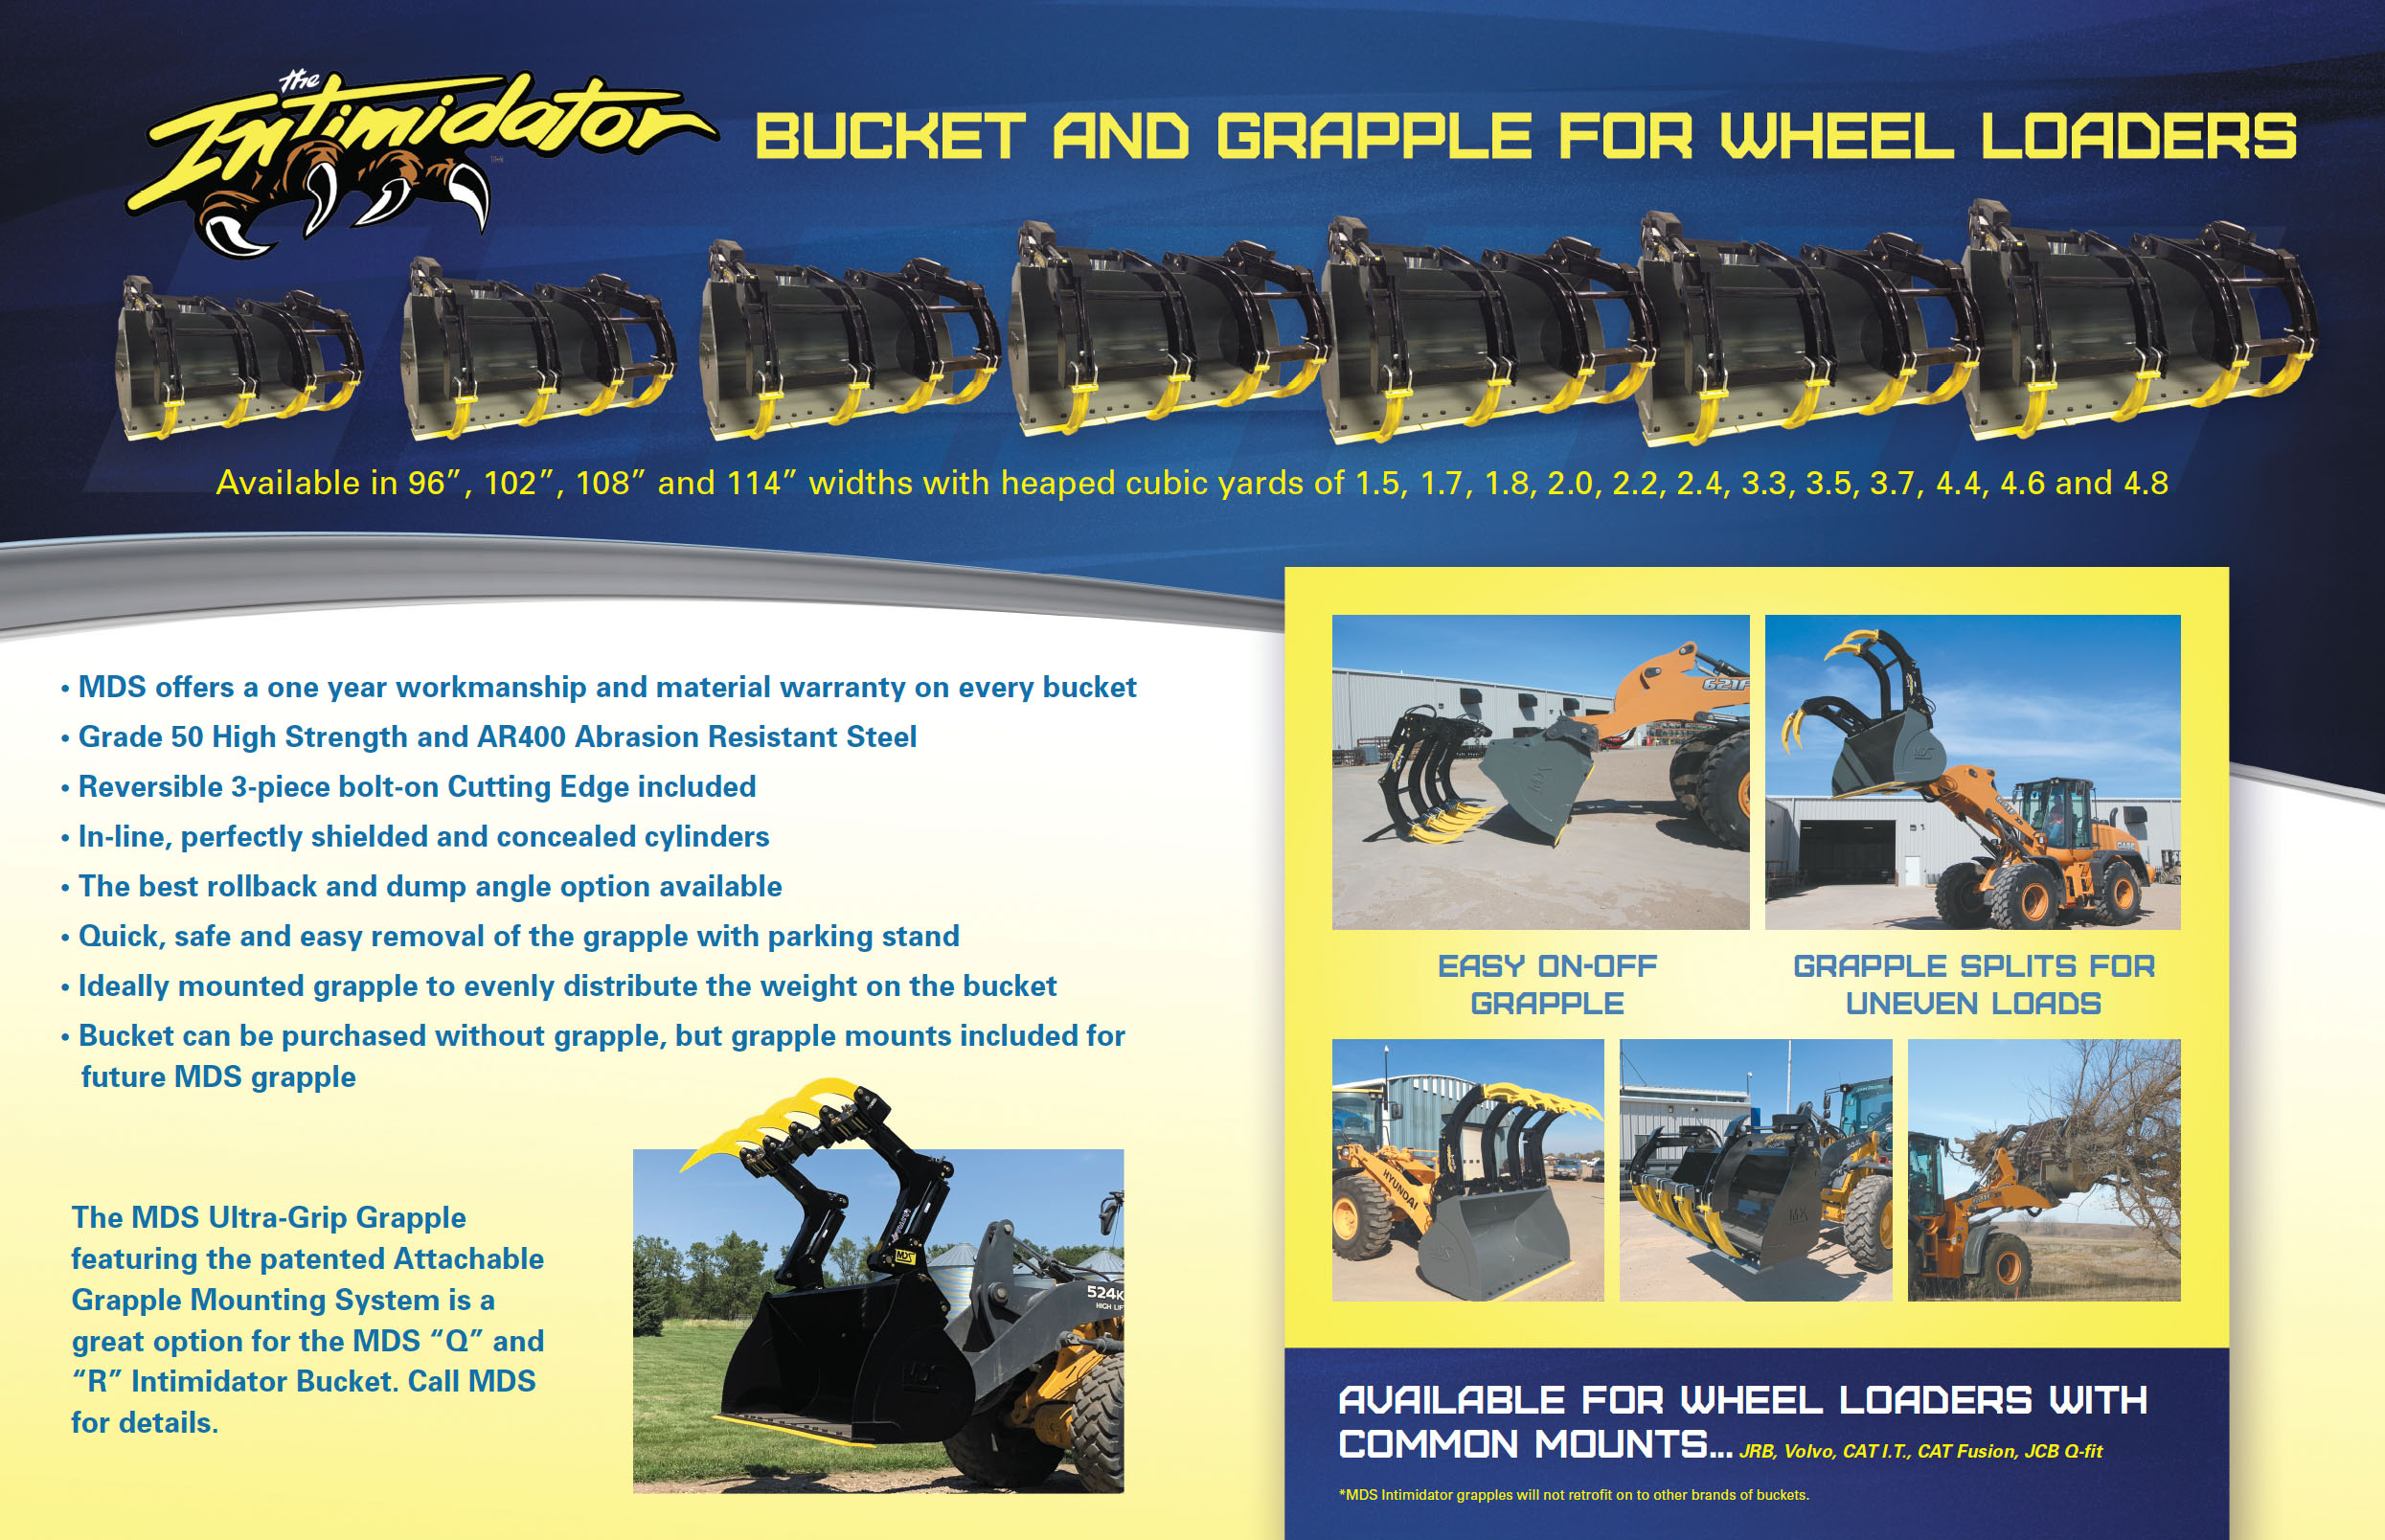 Buckets and grapple for telehandlers and wheel loaders